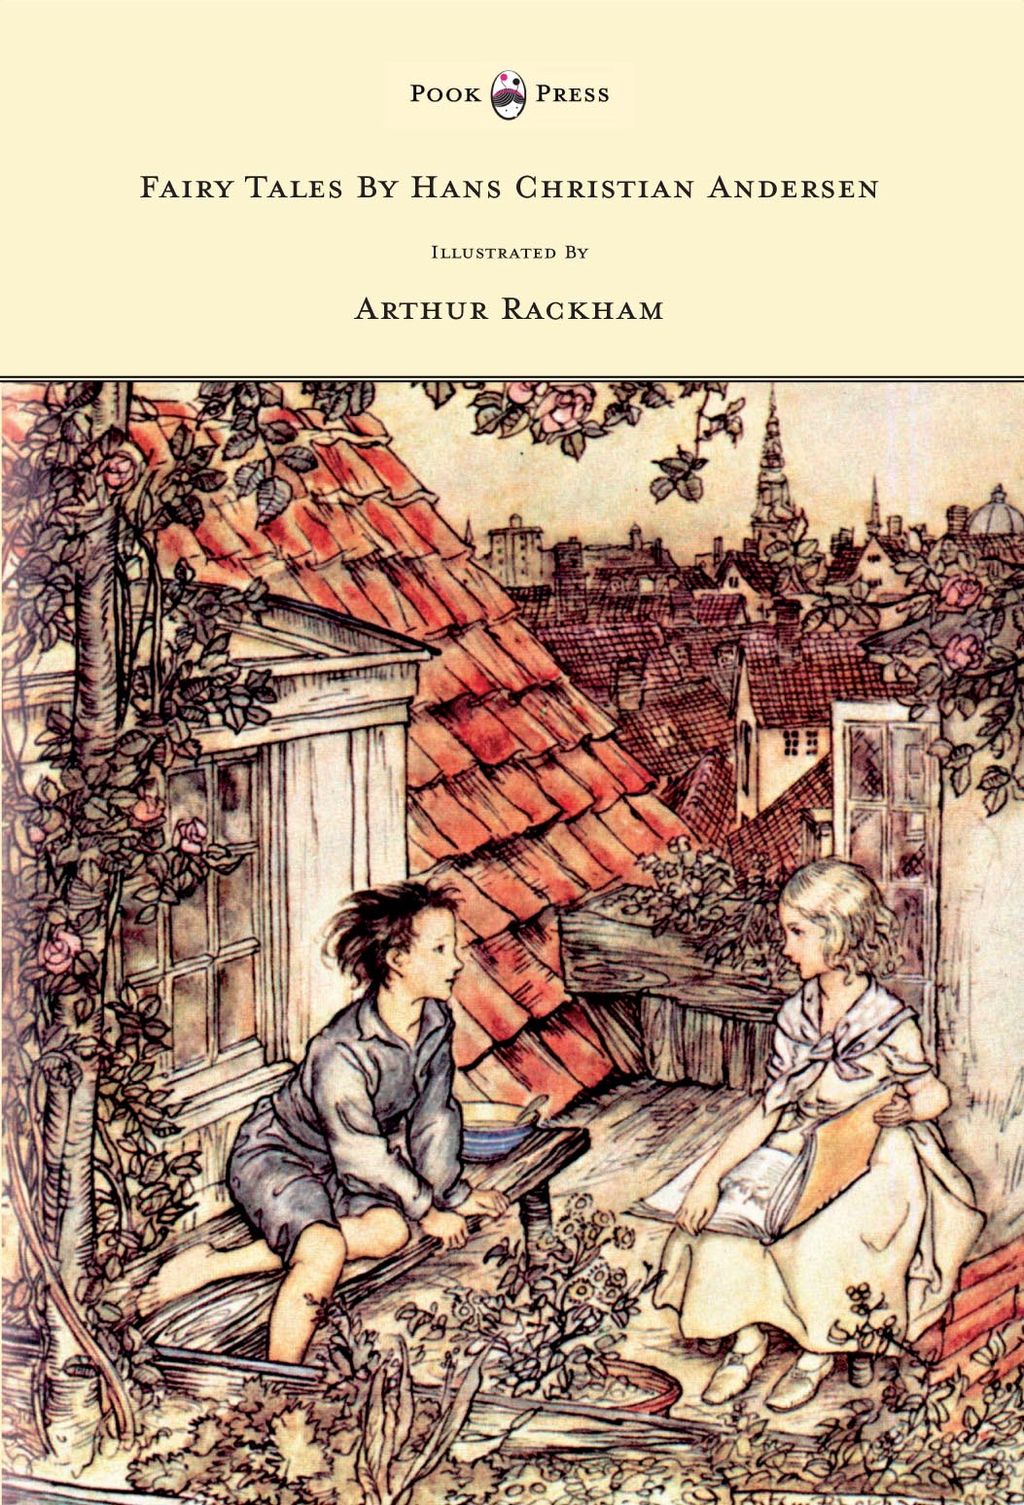 Fairy Tales By Hans Christian Andersen Illustrated By Arthur Rackham By: Hans Christian Anderson